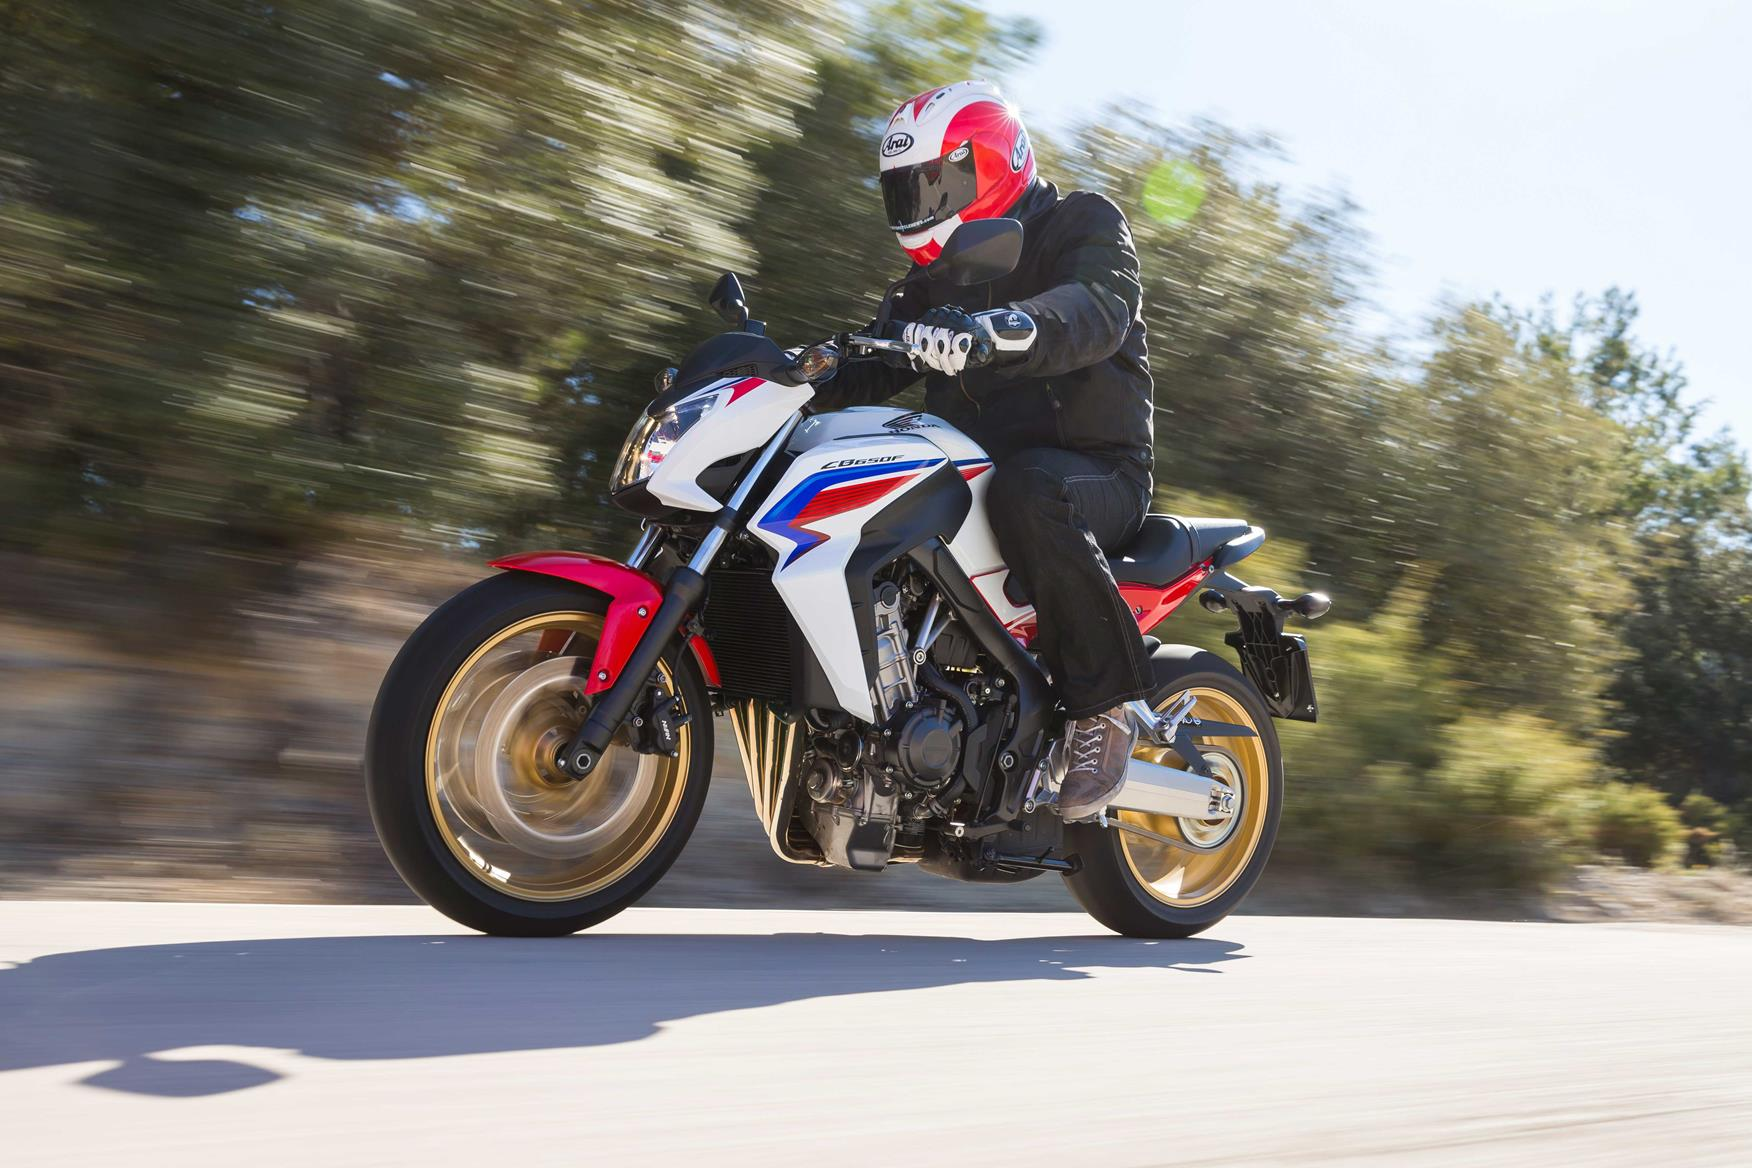 Honda's CB650F is a great bike at a great price